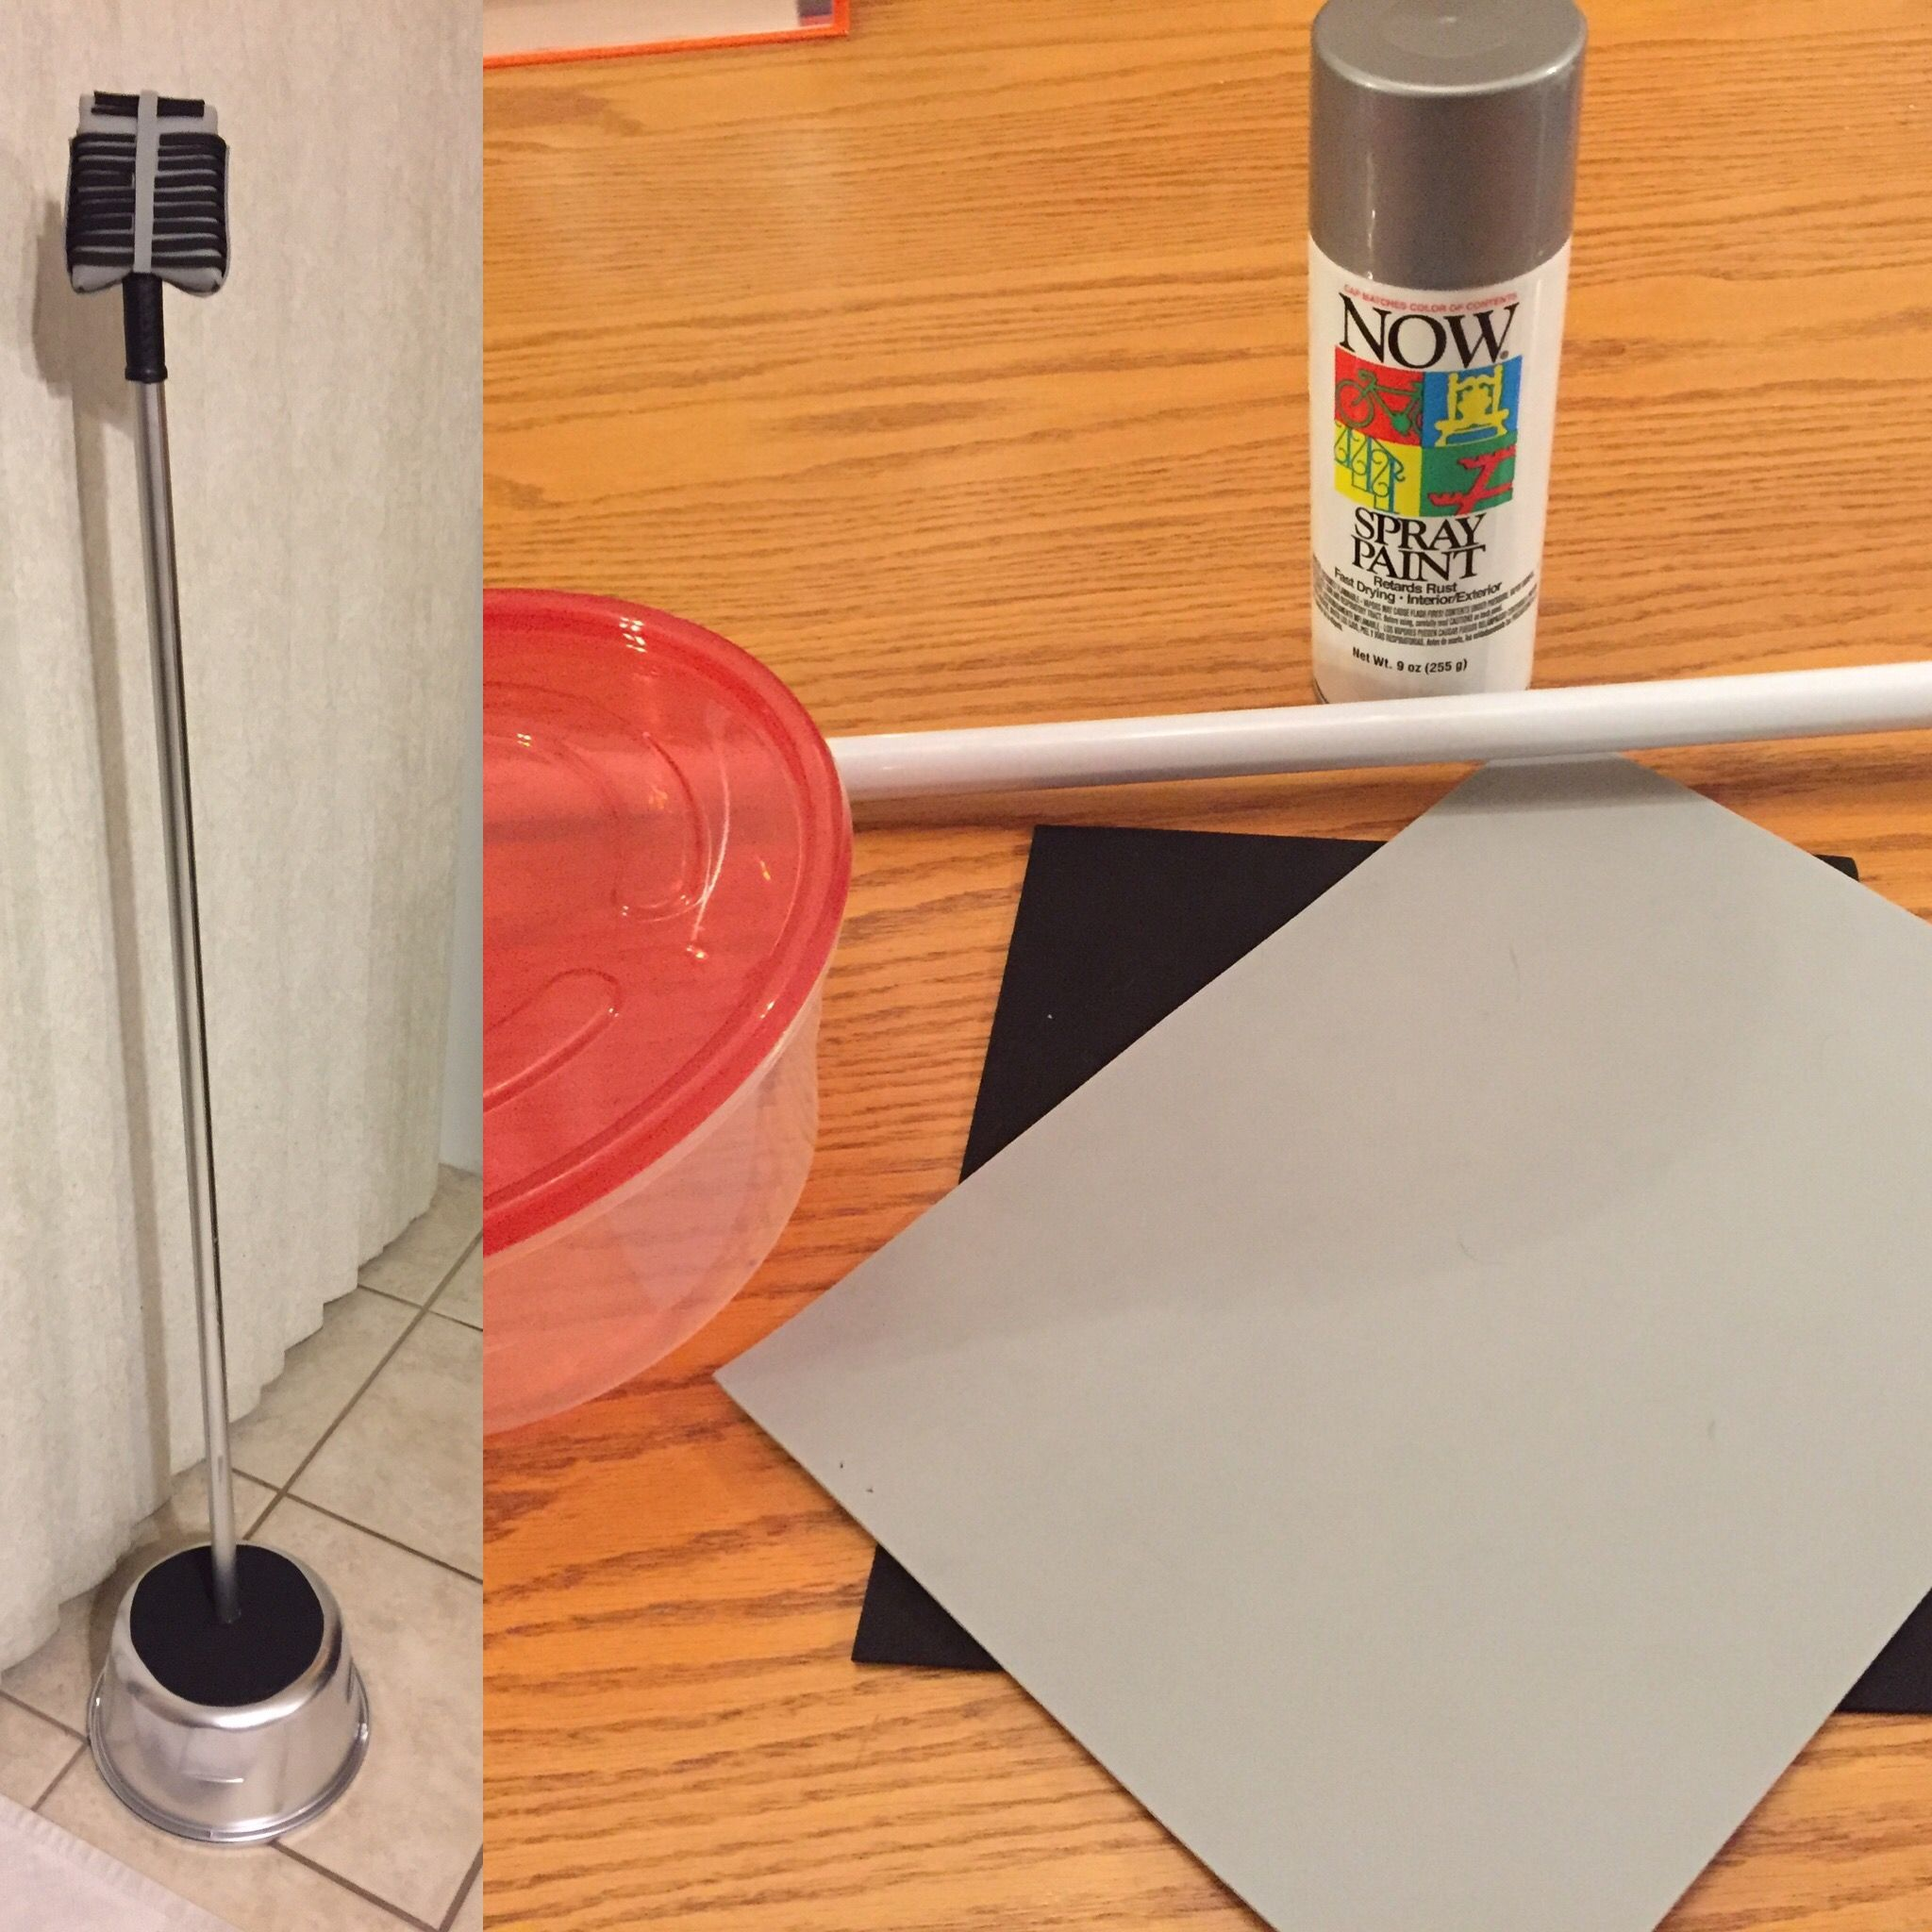 Diy microphone for costume dollar store broom handle plastic diy microphone for costume dollar store broom handle plastic dish sprayed with silver spray doublecrazyfo Image collections